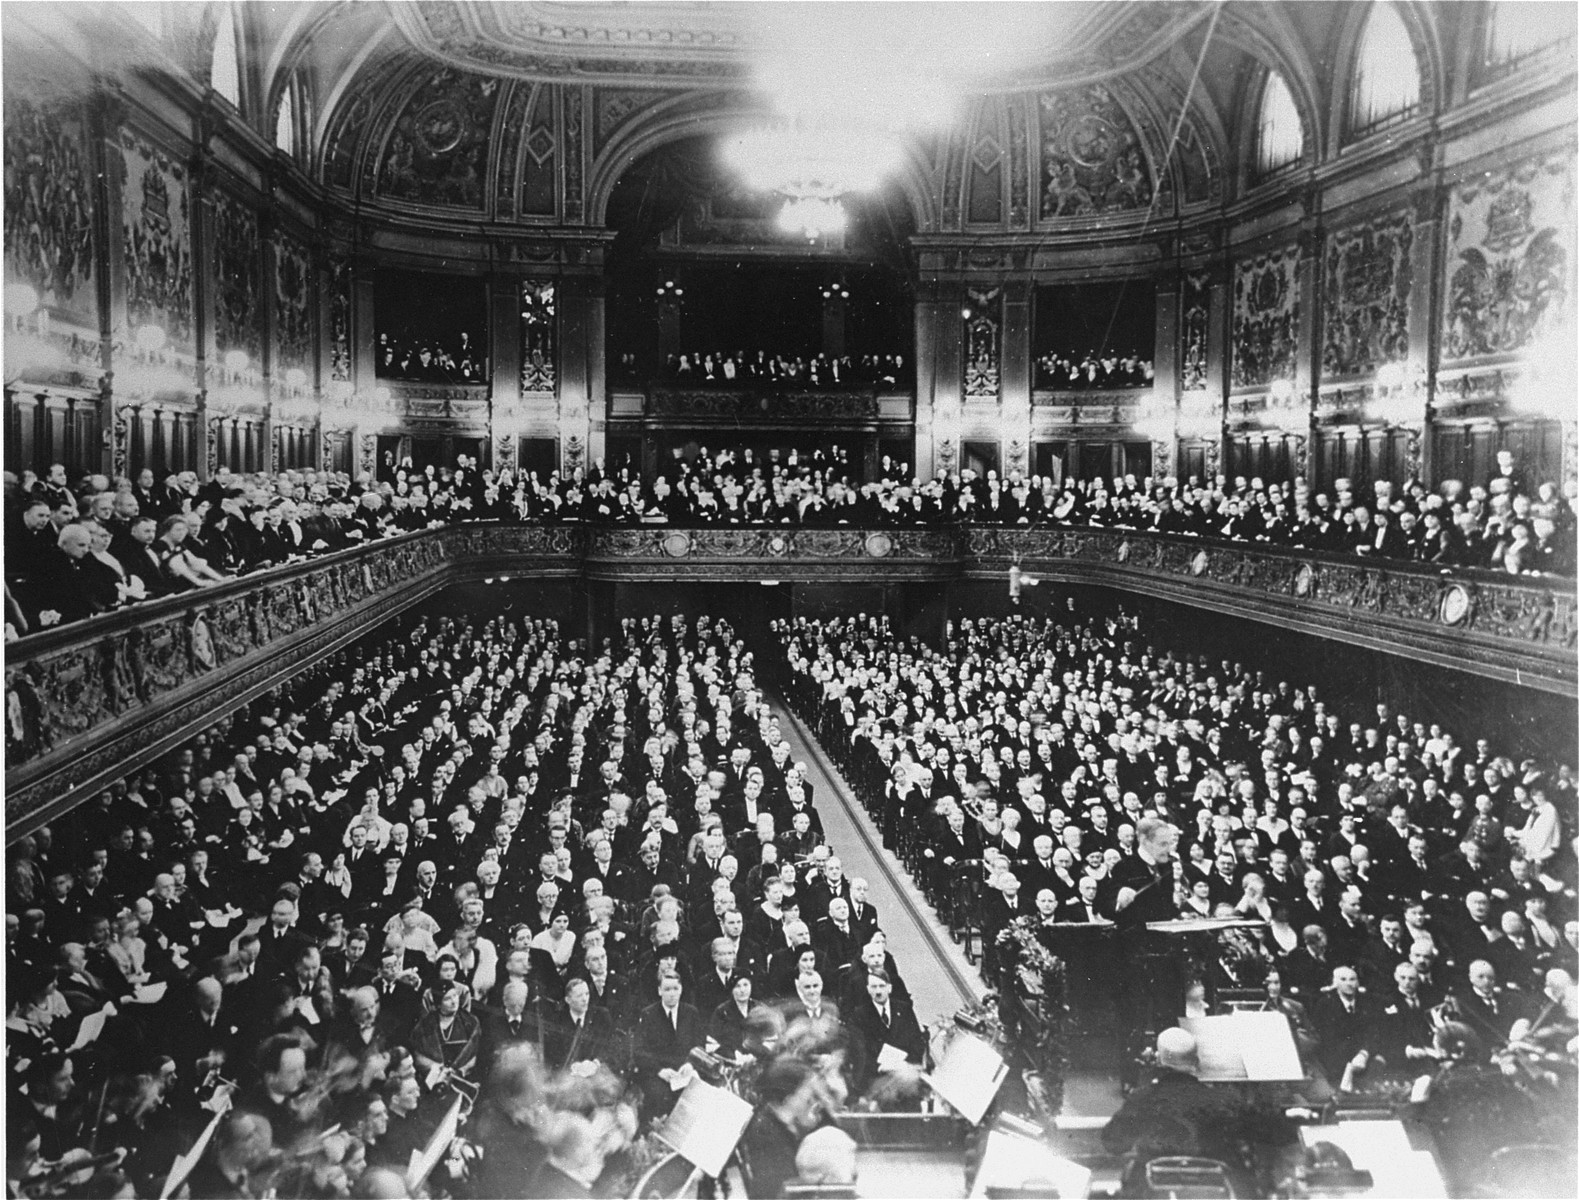 View of the concert audience during a performance of Wagner by the Leipzig orchestra, conducted by Dr. Carl Muck.  Pictured in the front row of the audience is Adolf Hitler (on the aisle).  Sitting next to him from right to left are Dr. Gordeler (mayor of Leipzig), Winnifred Wagner (daughter-in-law of composer Richard Wagner), her son Wieland Wagner, Reichsminister Lutz Schwerin von Krosigk, President of the Reich Supreme Court Erwin Bumke, and Mrs. Bumke. On the other side of the aisle in the front row, from left to right are Reichsminister Hermann Goering (partially obscured by podium), and Reichsminister of Interior Wilhelm Frick.